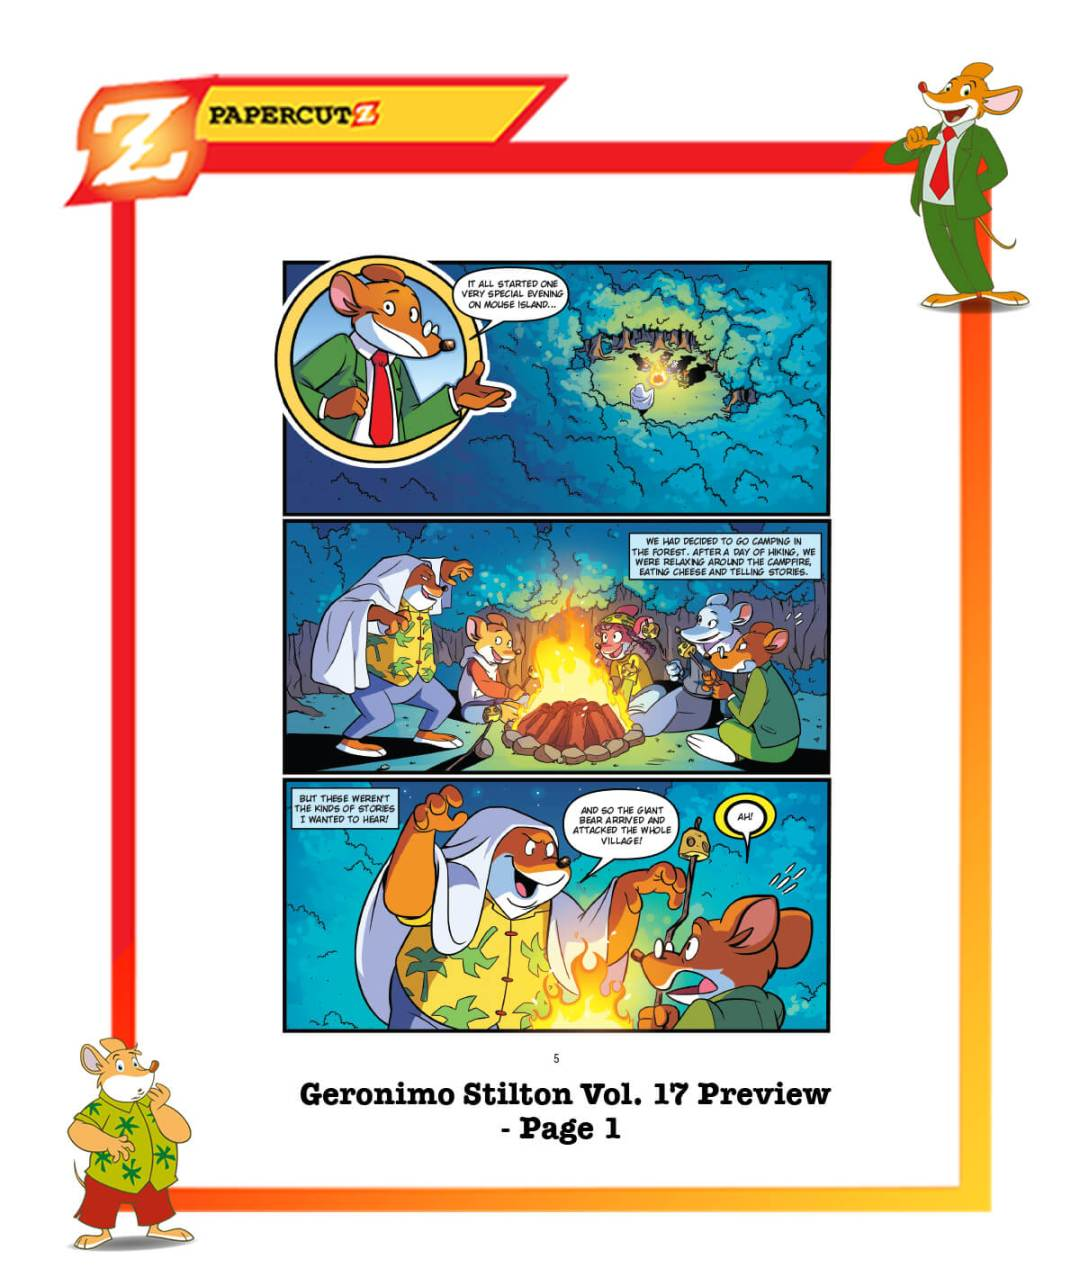 geronimo_stilton_017_preview_page01